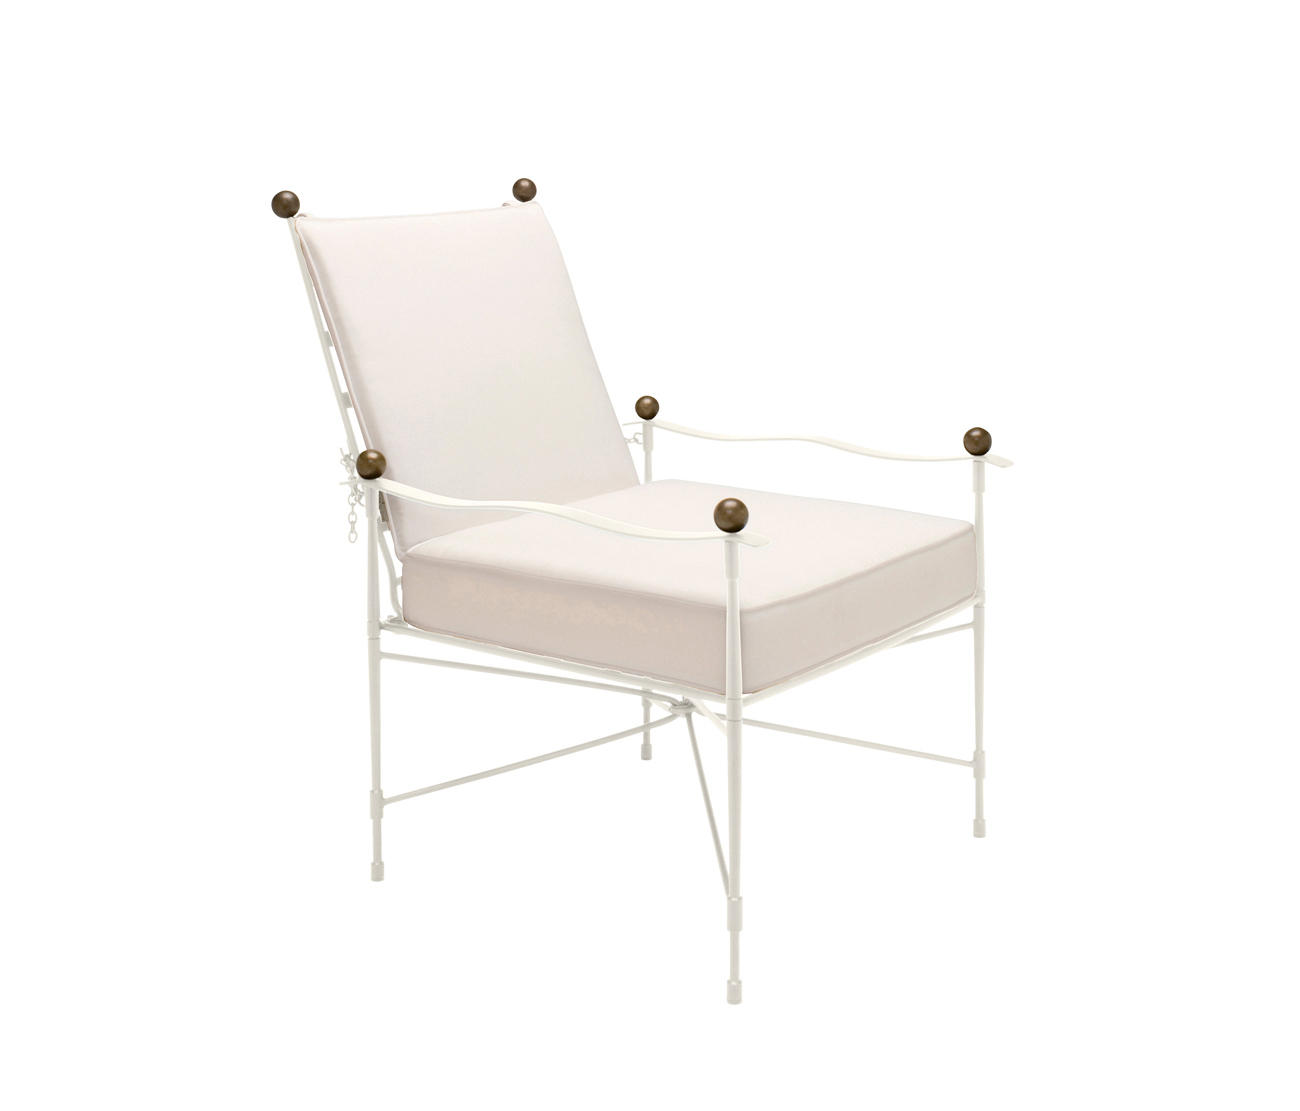 Tremendous Amalfi Adjustable Chain Back Lounge Chair Architonic Gmtry Best Dining Table And Chair Ideas Images Gmtryco